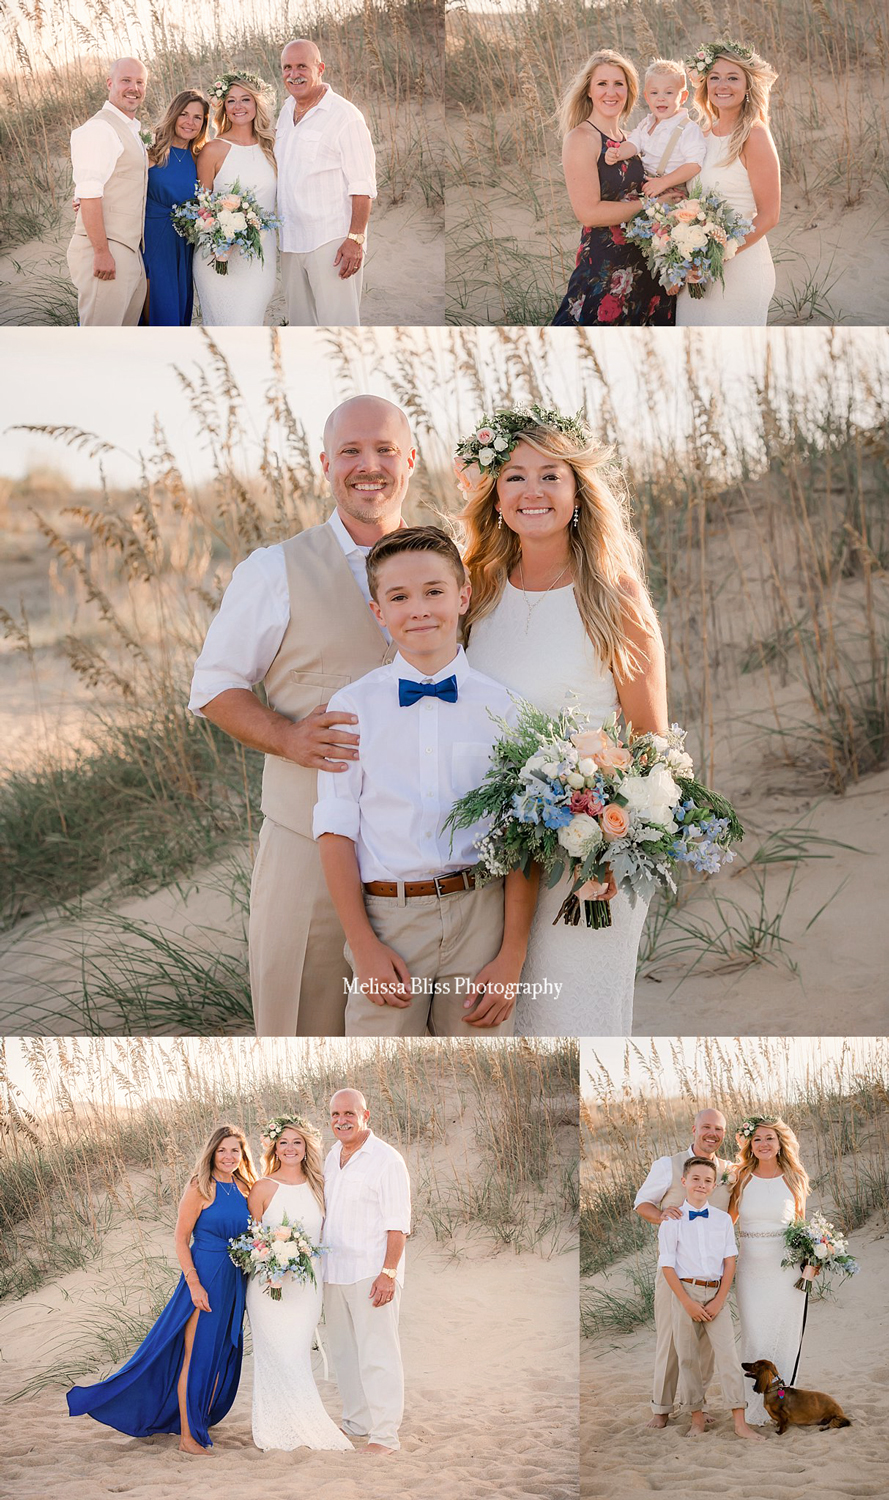 virginia-beach-wedding-photos-melissab-bliss-photography-beach-wedding.jpg